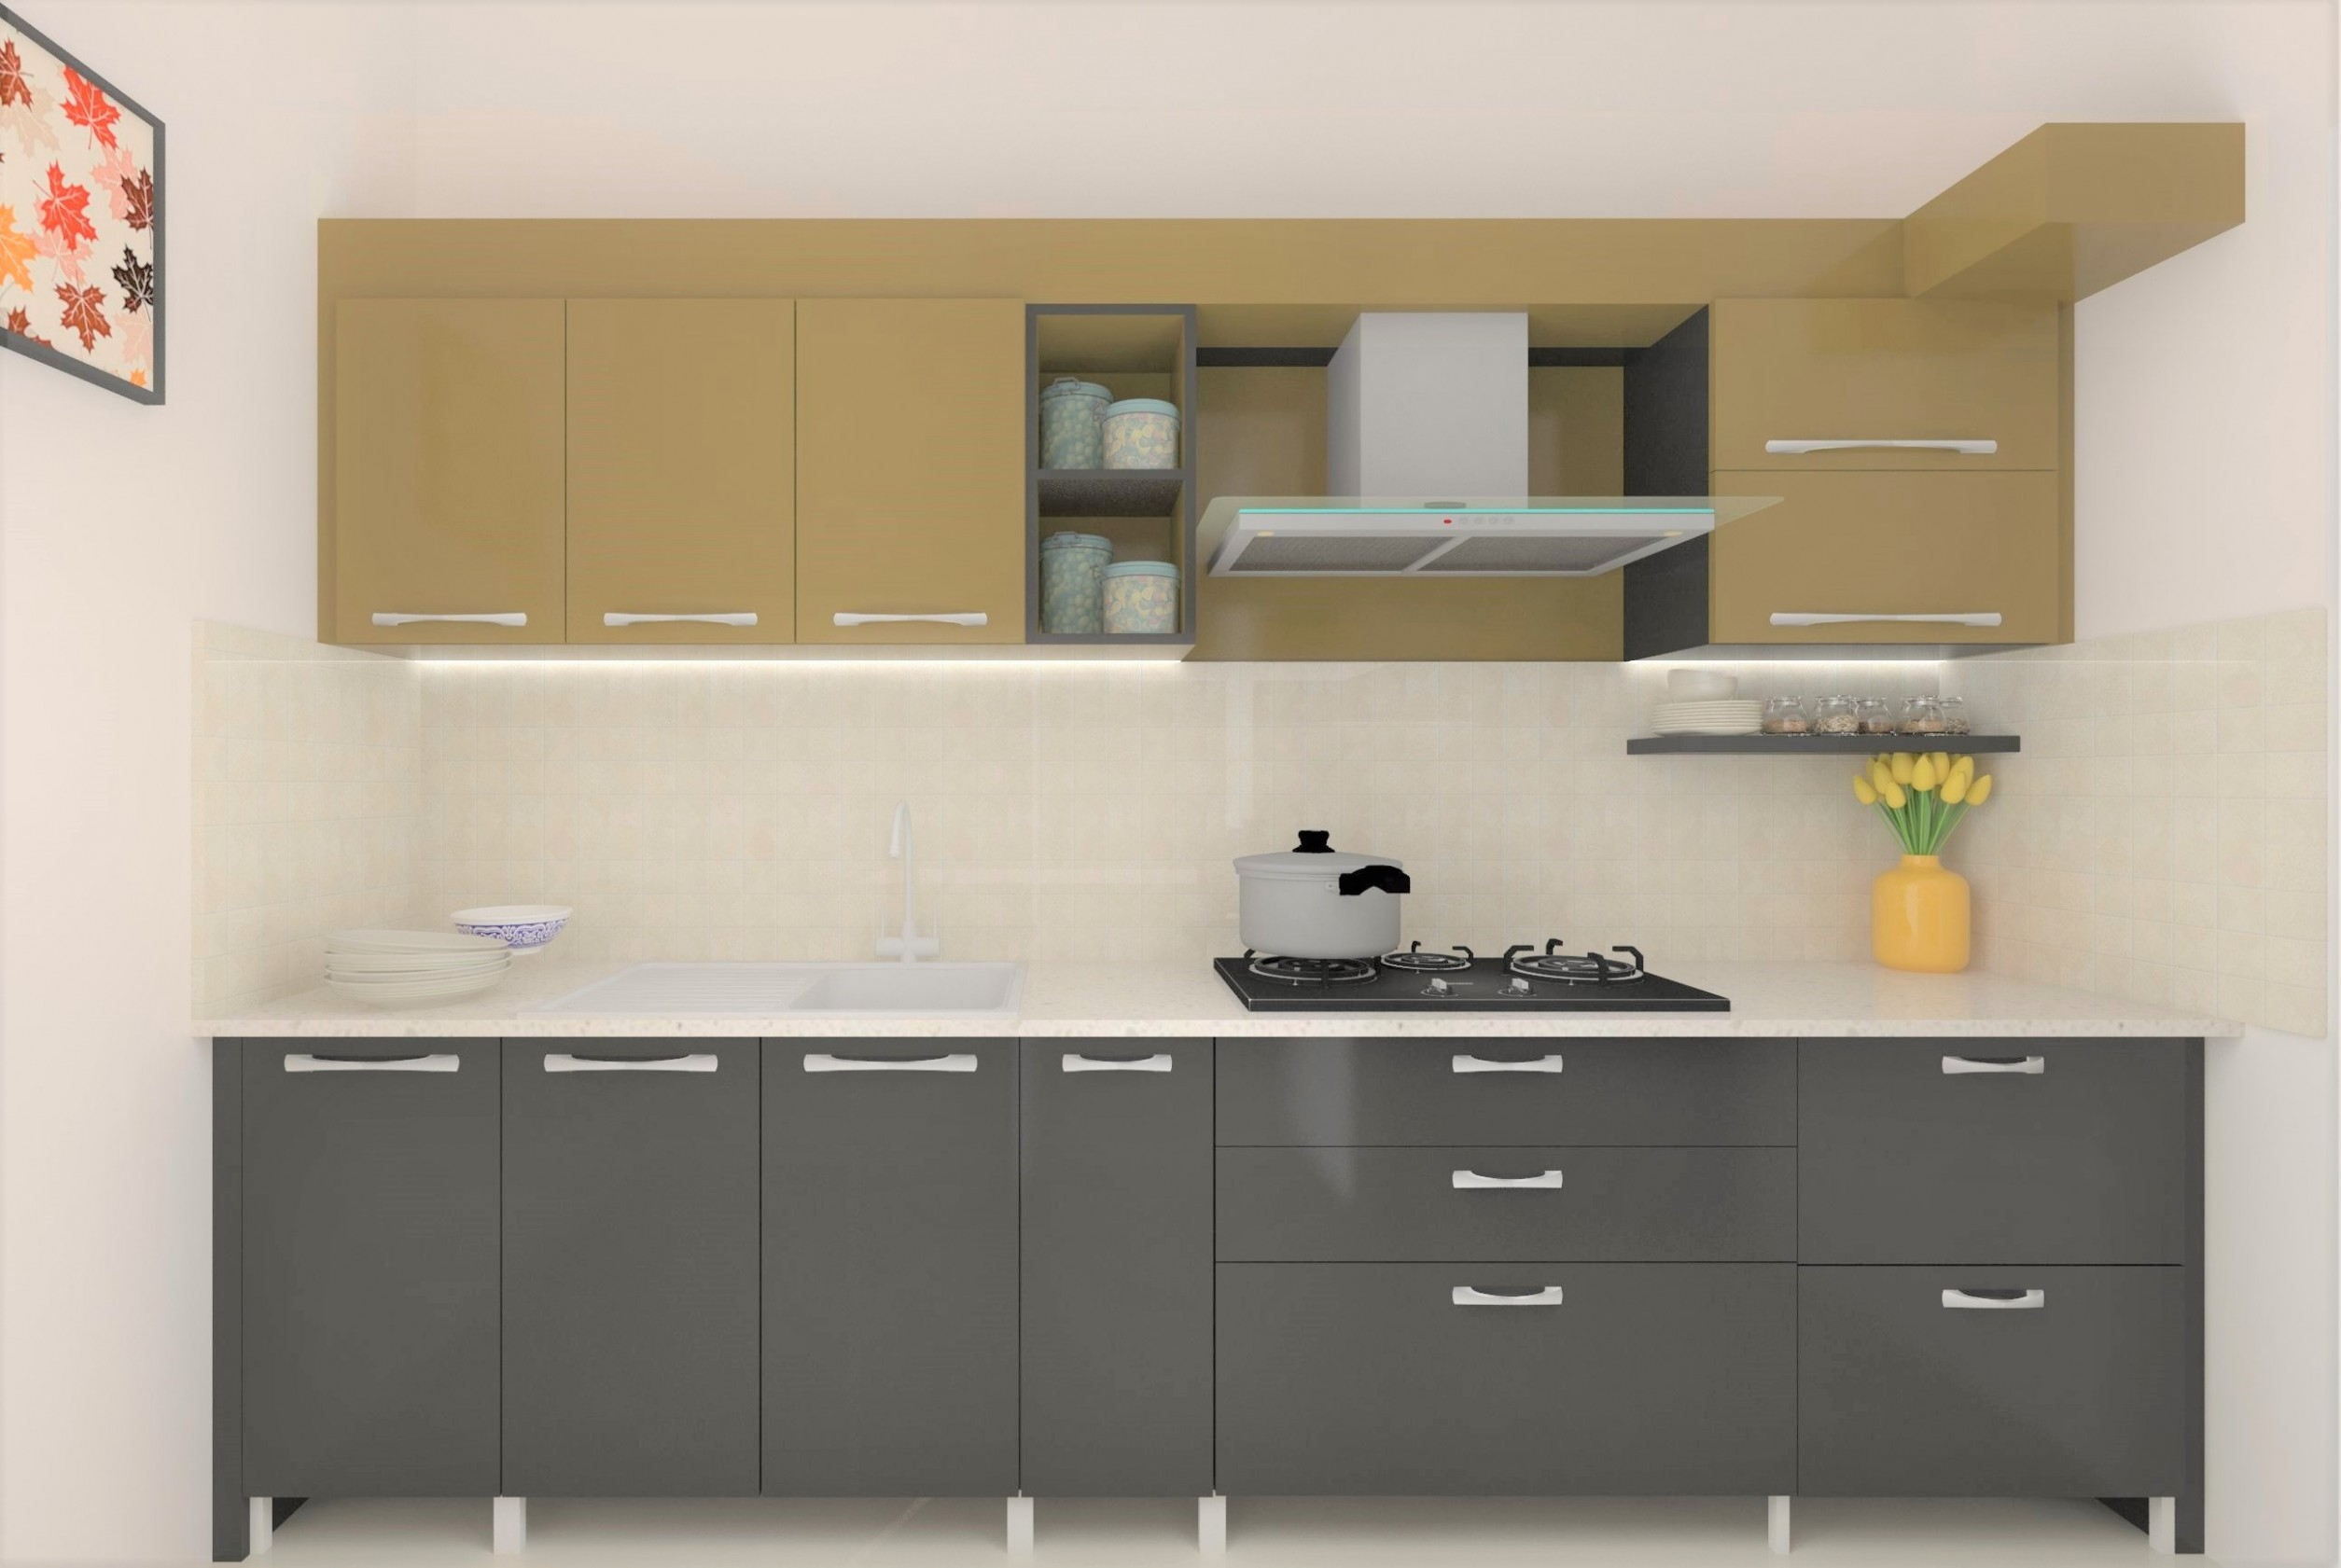 Best Modular Kitchen in Bangalore  L & U Shape Kitchen  - Used Modular Kitchen Cabinets Bangalore